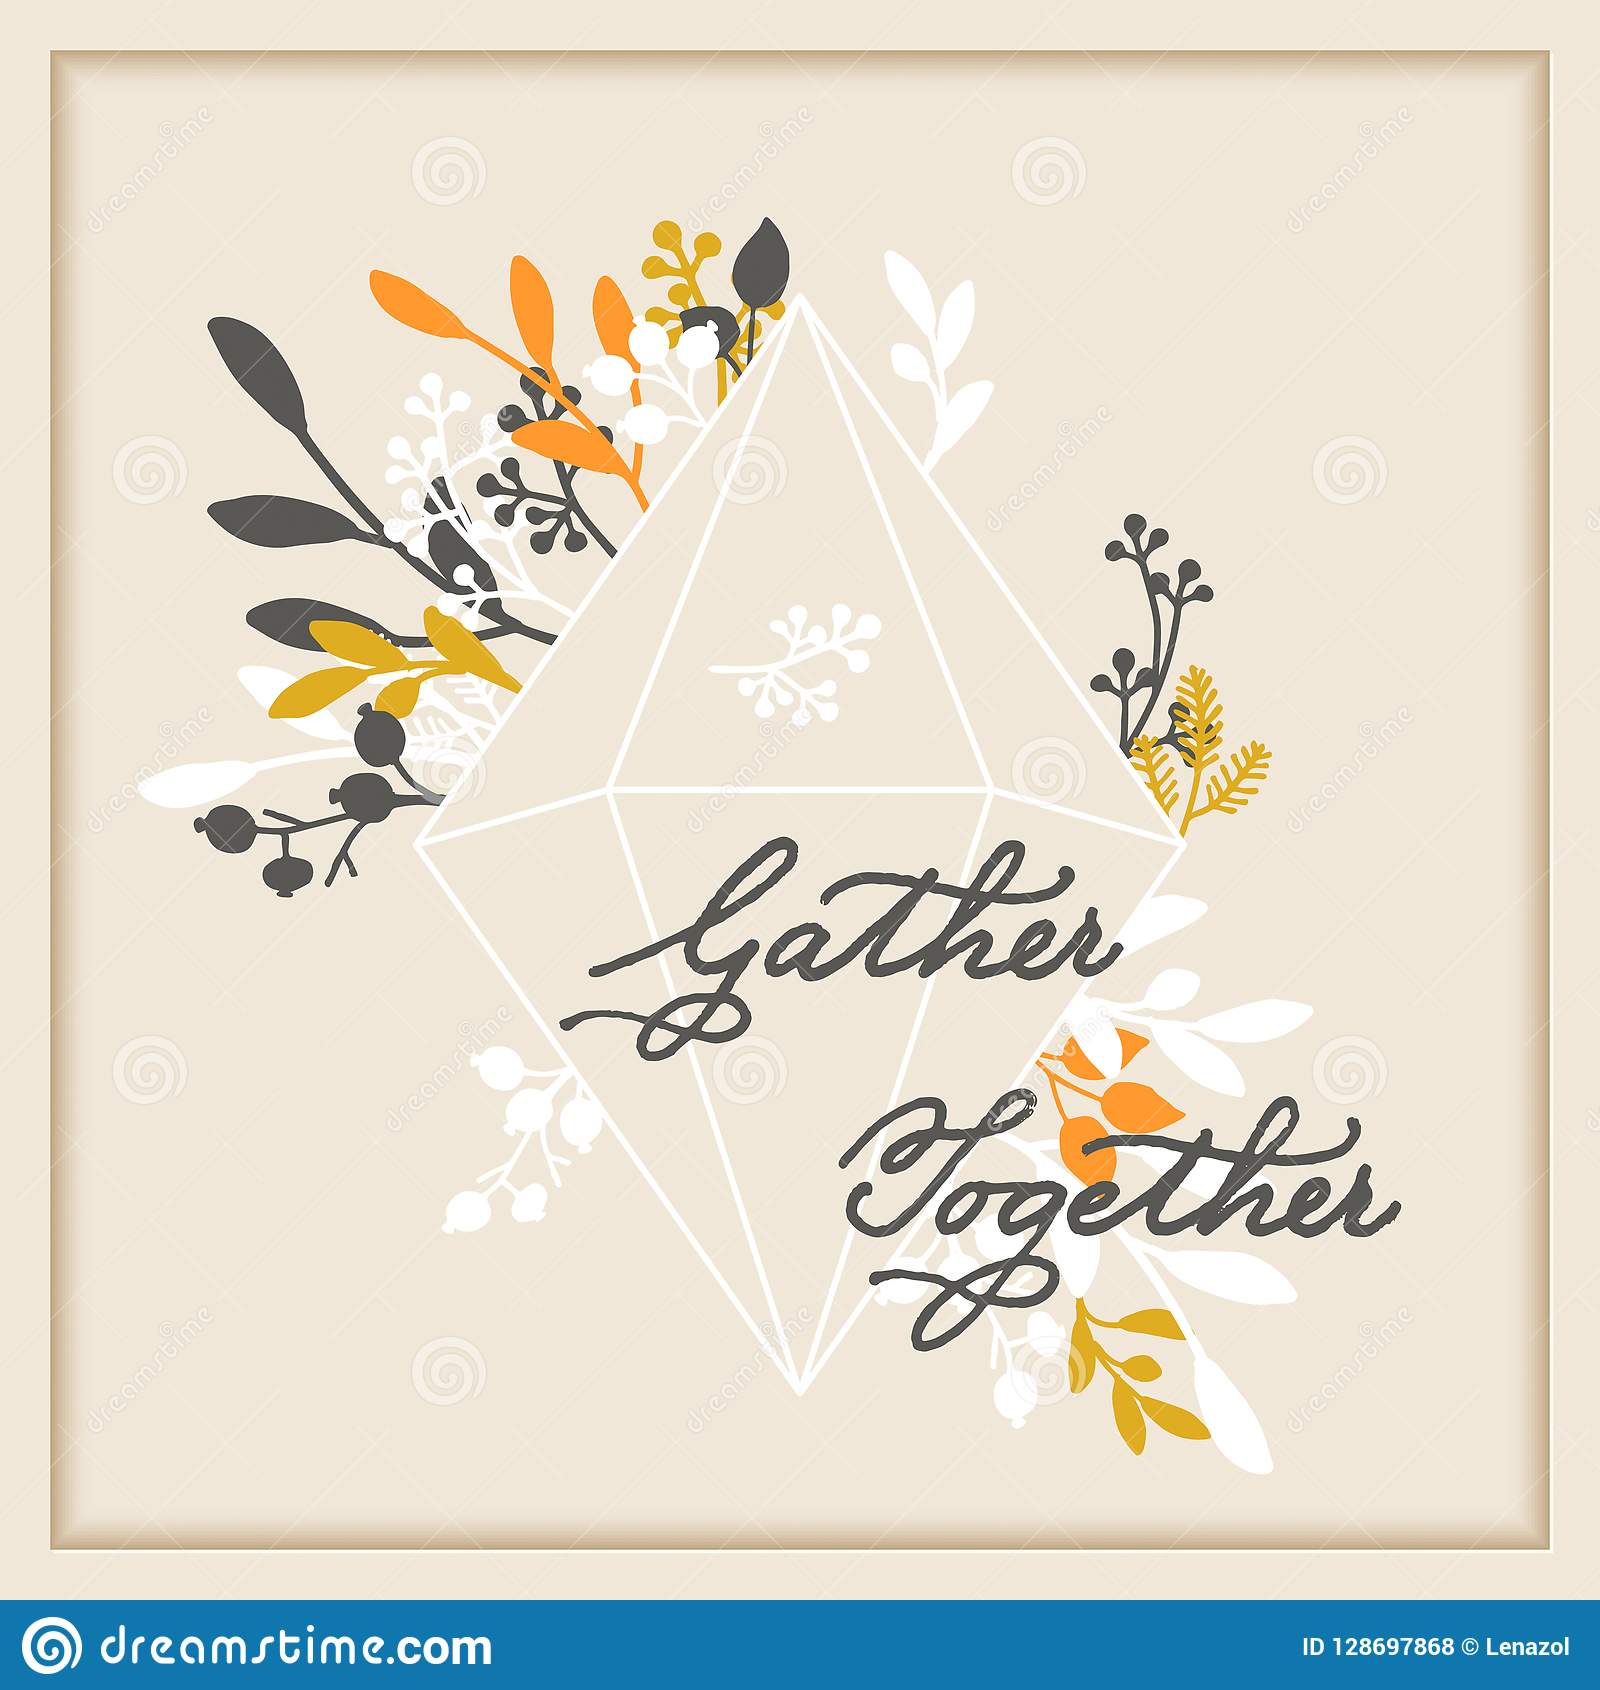 Vector thanksgiving cards template with handwriting gather together and leaf wreath. design for gift cards, print, backgro